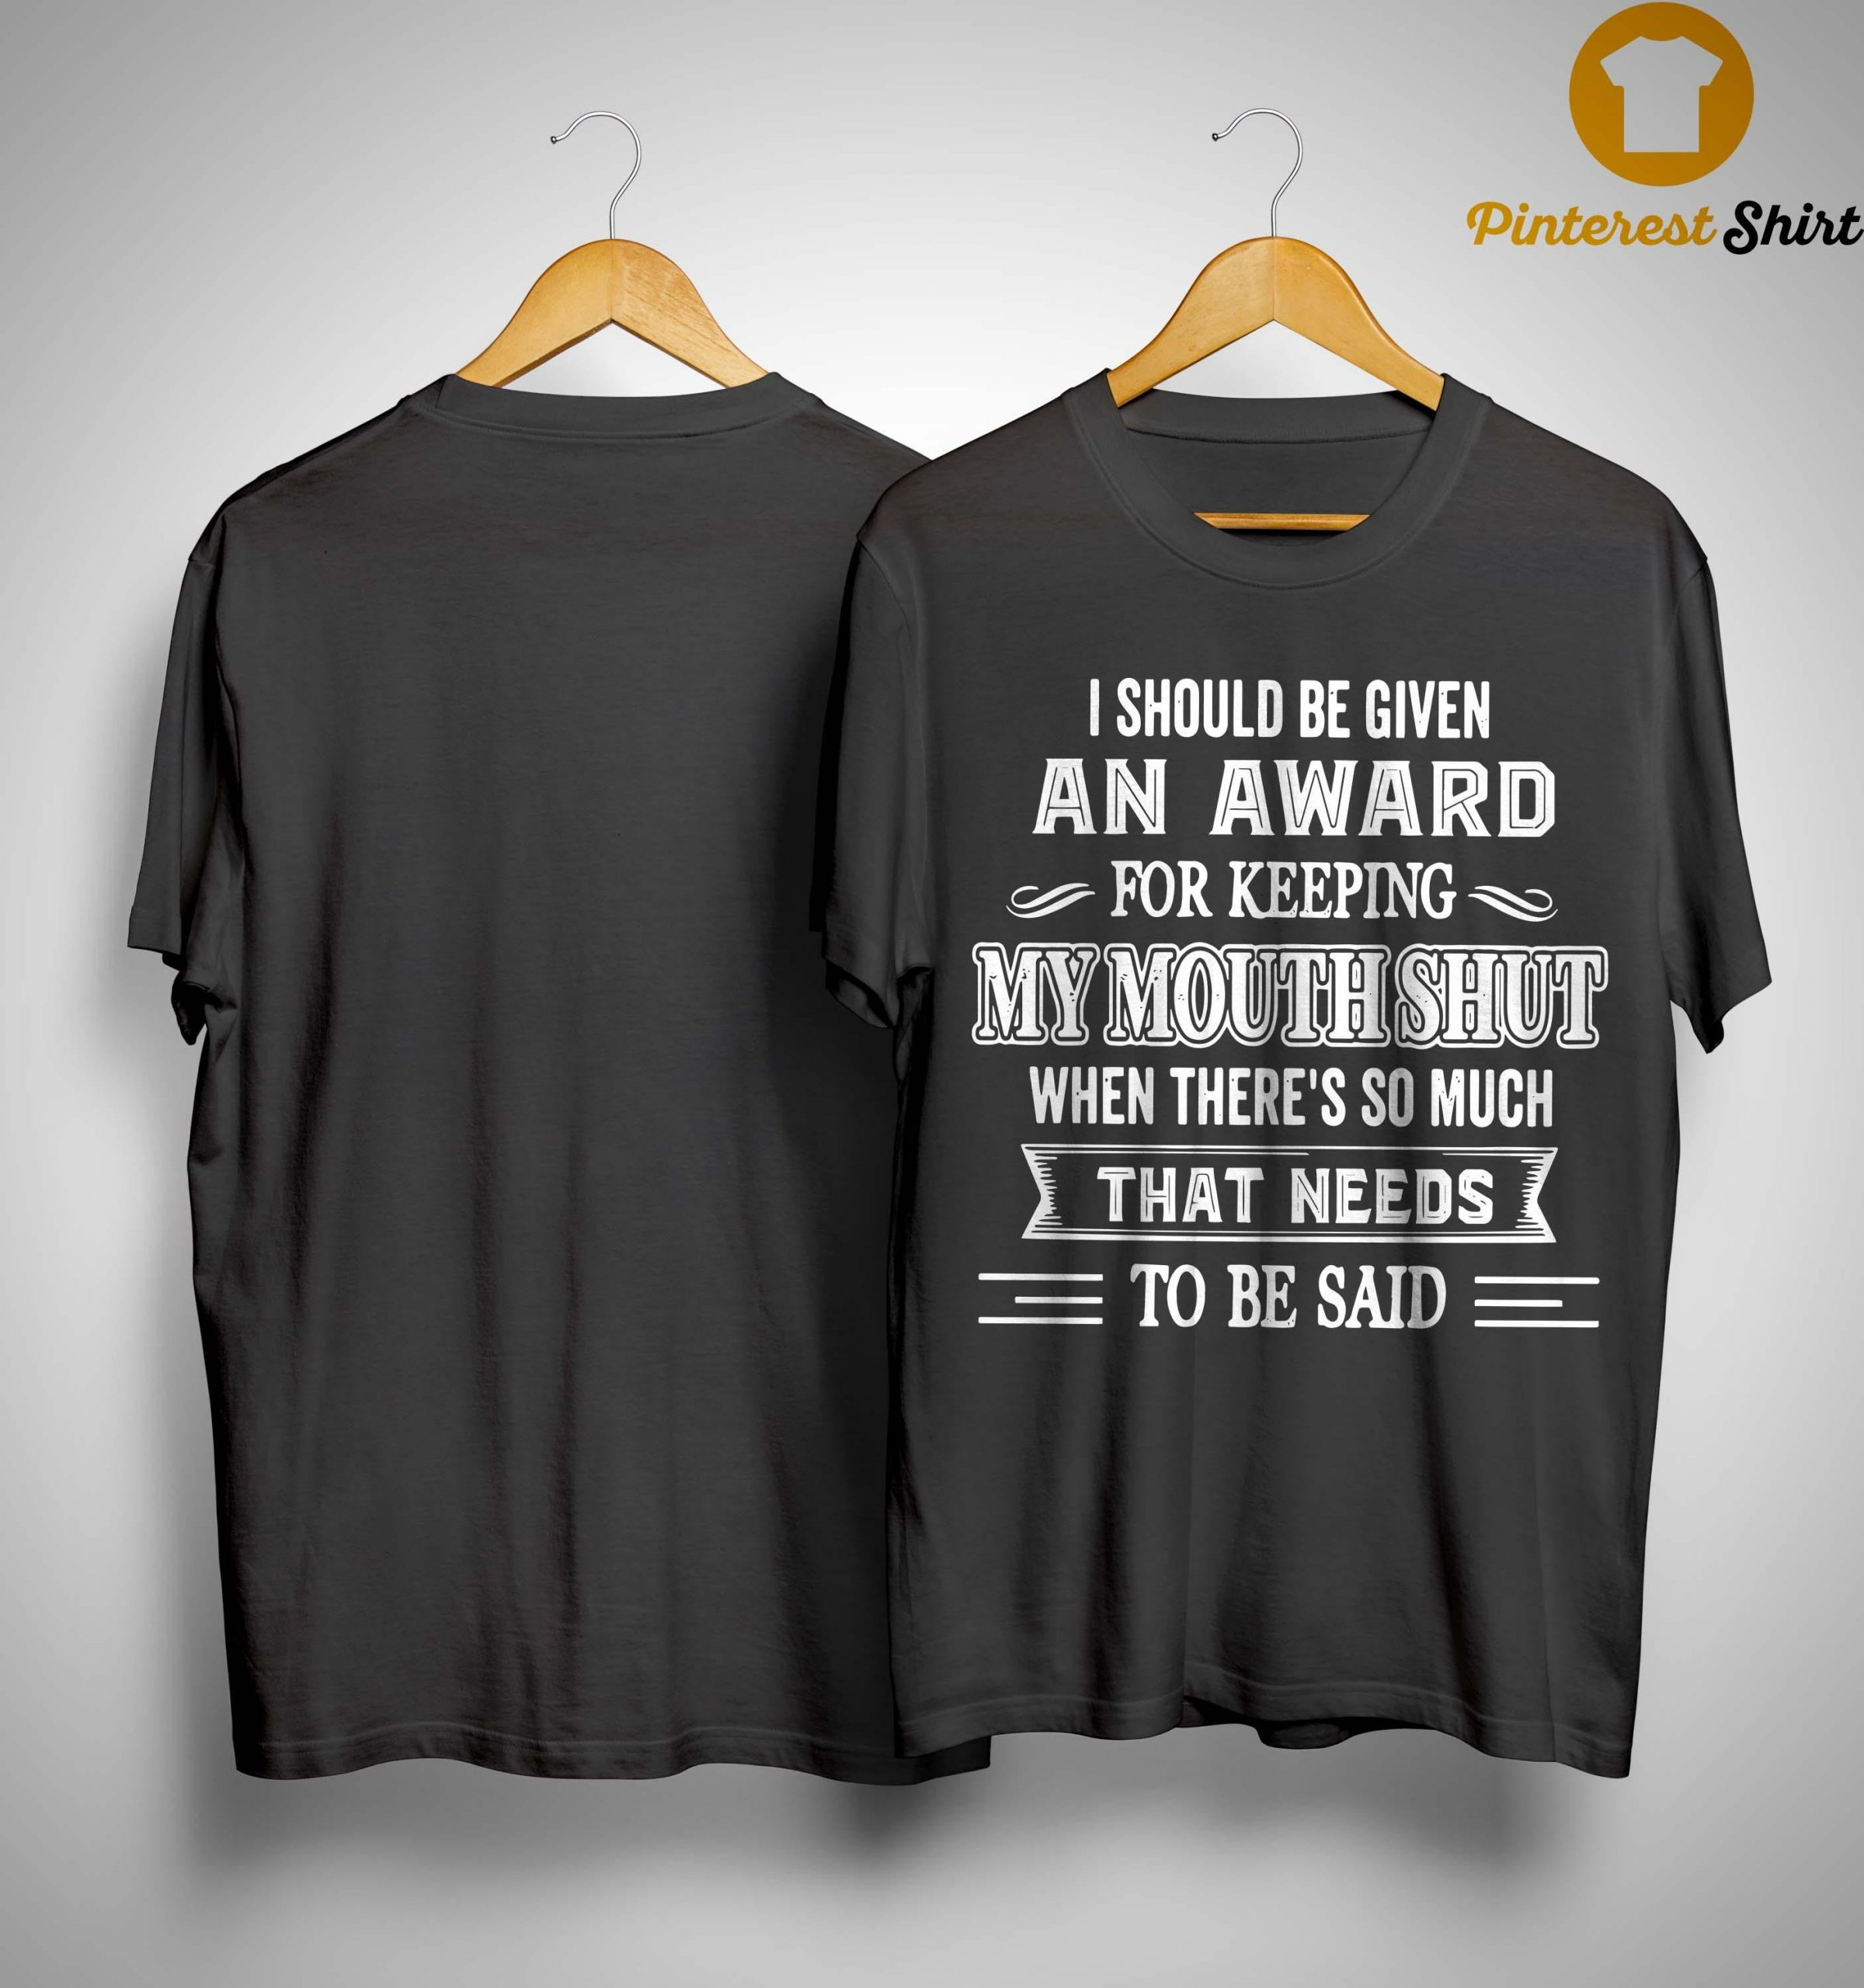 I Should Be Given An Award For Keeping My Mouth Shut Shirt